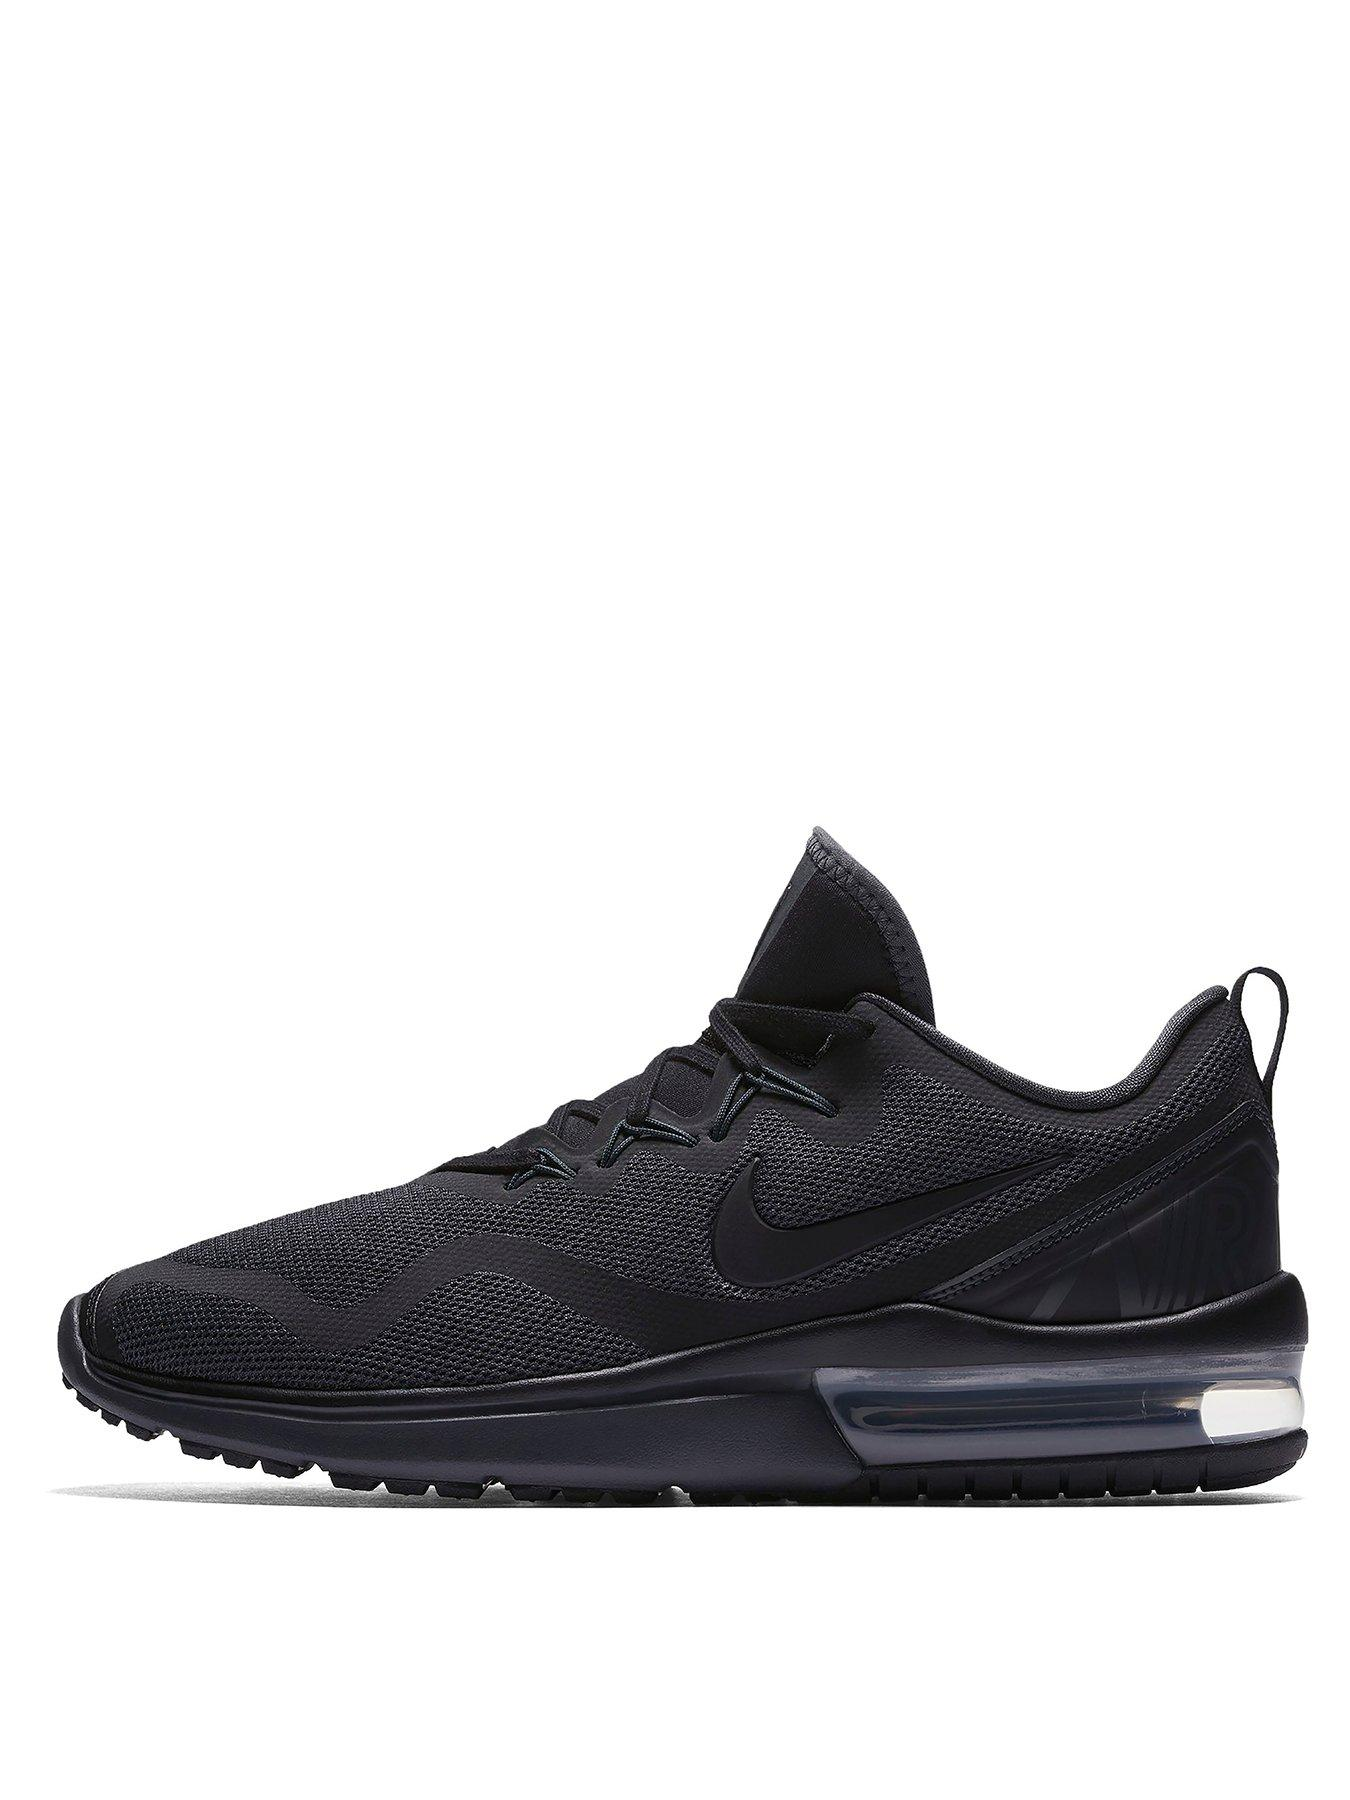 Nike Air Max Fury 1600190632 Men's Shoes Nike Trainers